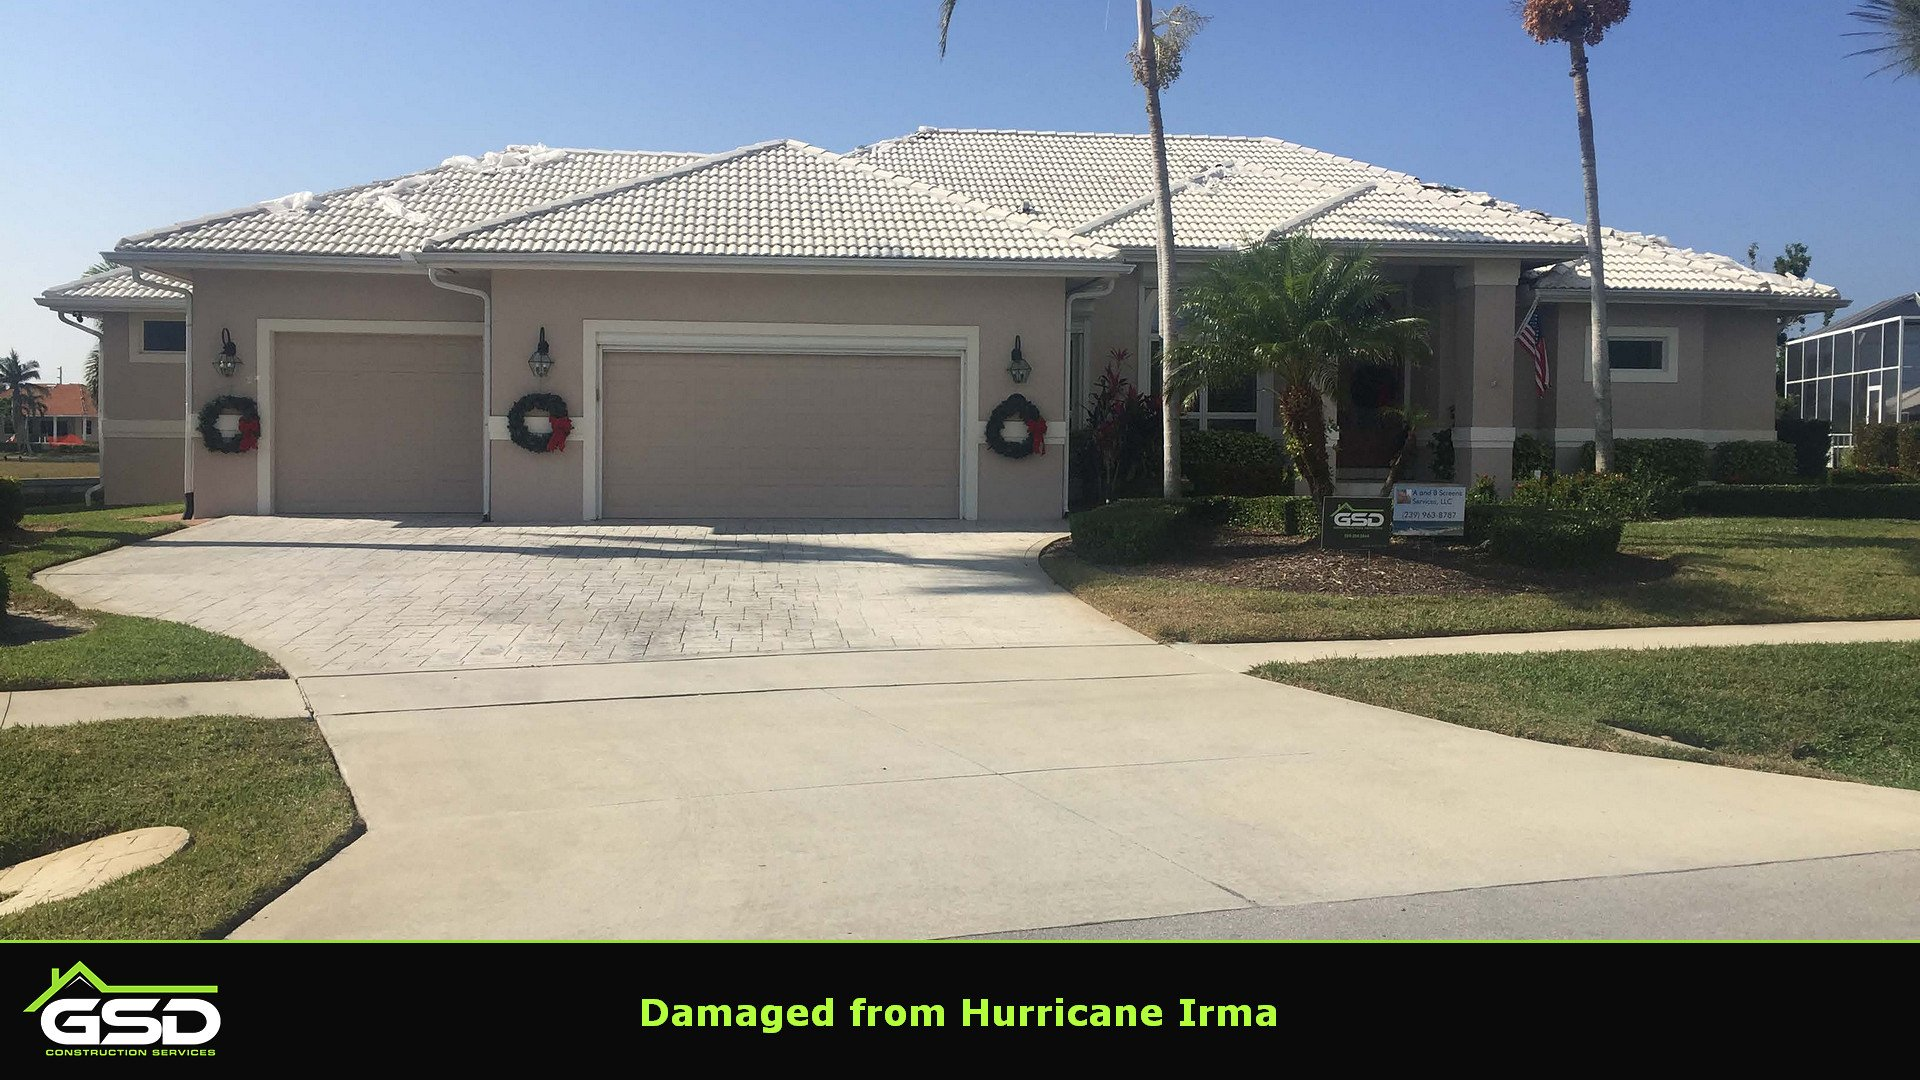 Hurricane Irma Damaged Tile Roof Gsd Construction